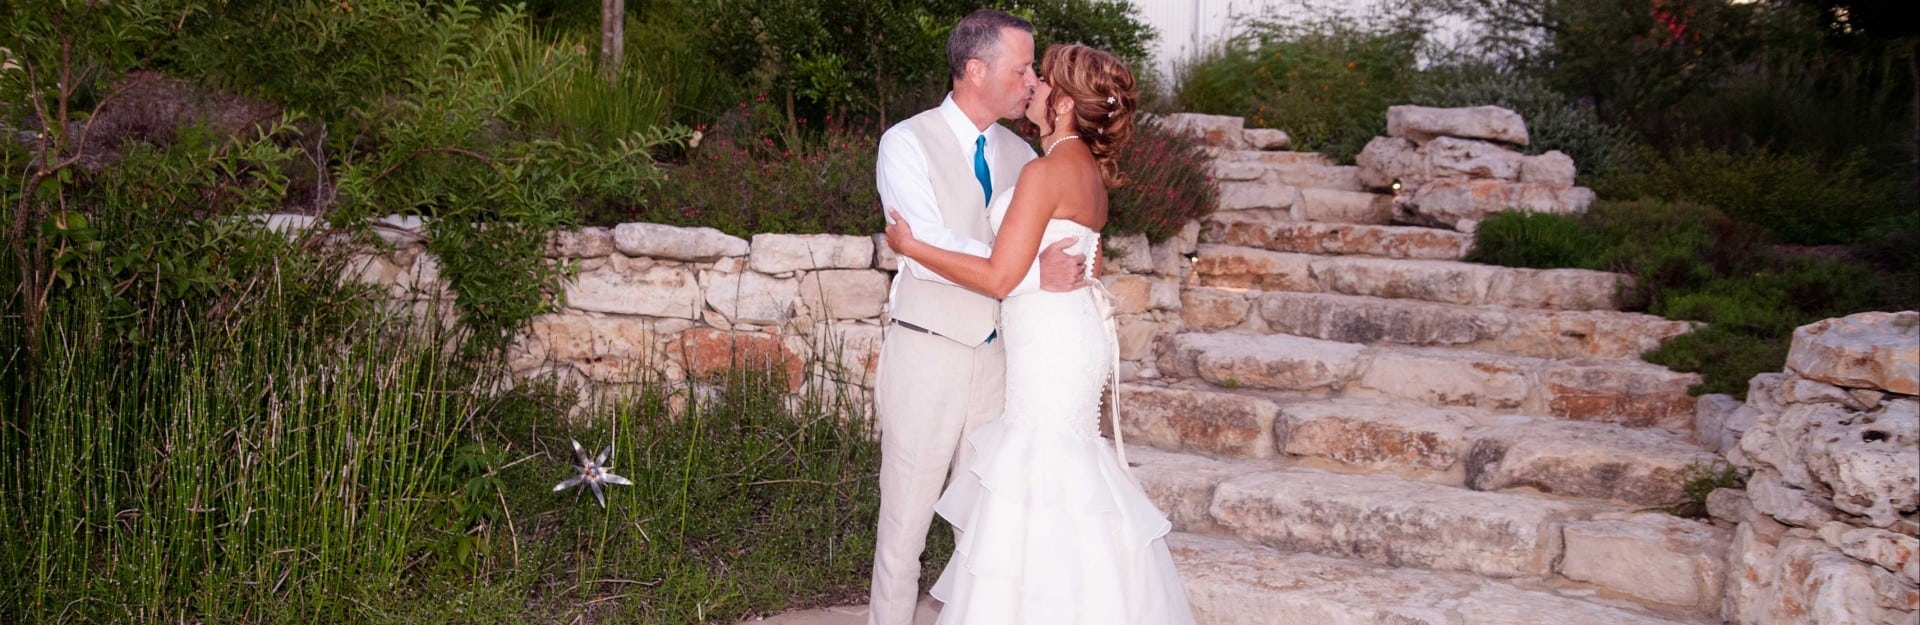 ‎Elopement Photography, Bridal Shower, Proposal photography, Wedding Proposal, Vow Renewal-11